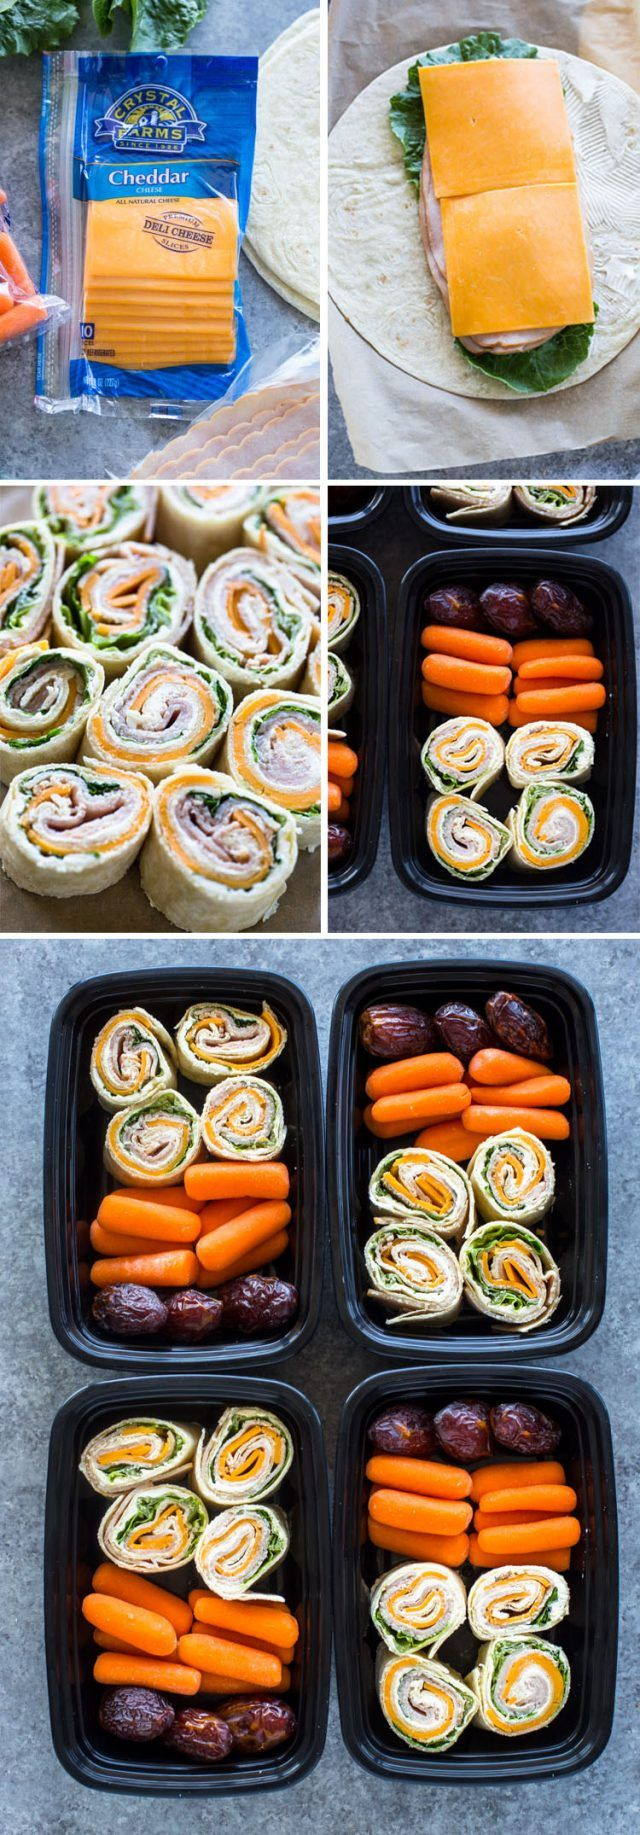 Turkey and Cheese Pinwheels (Meal-Prep Idea) #healthylunches